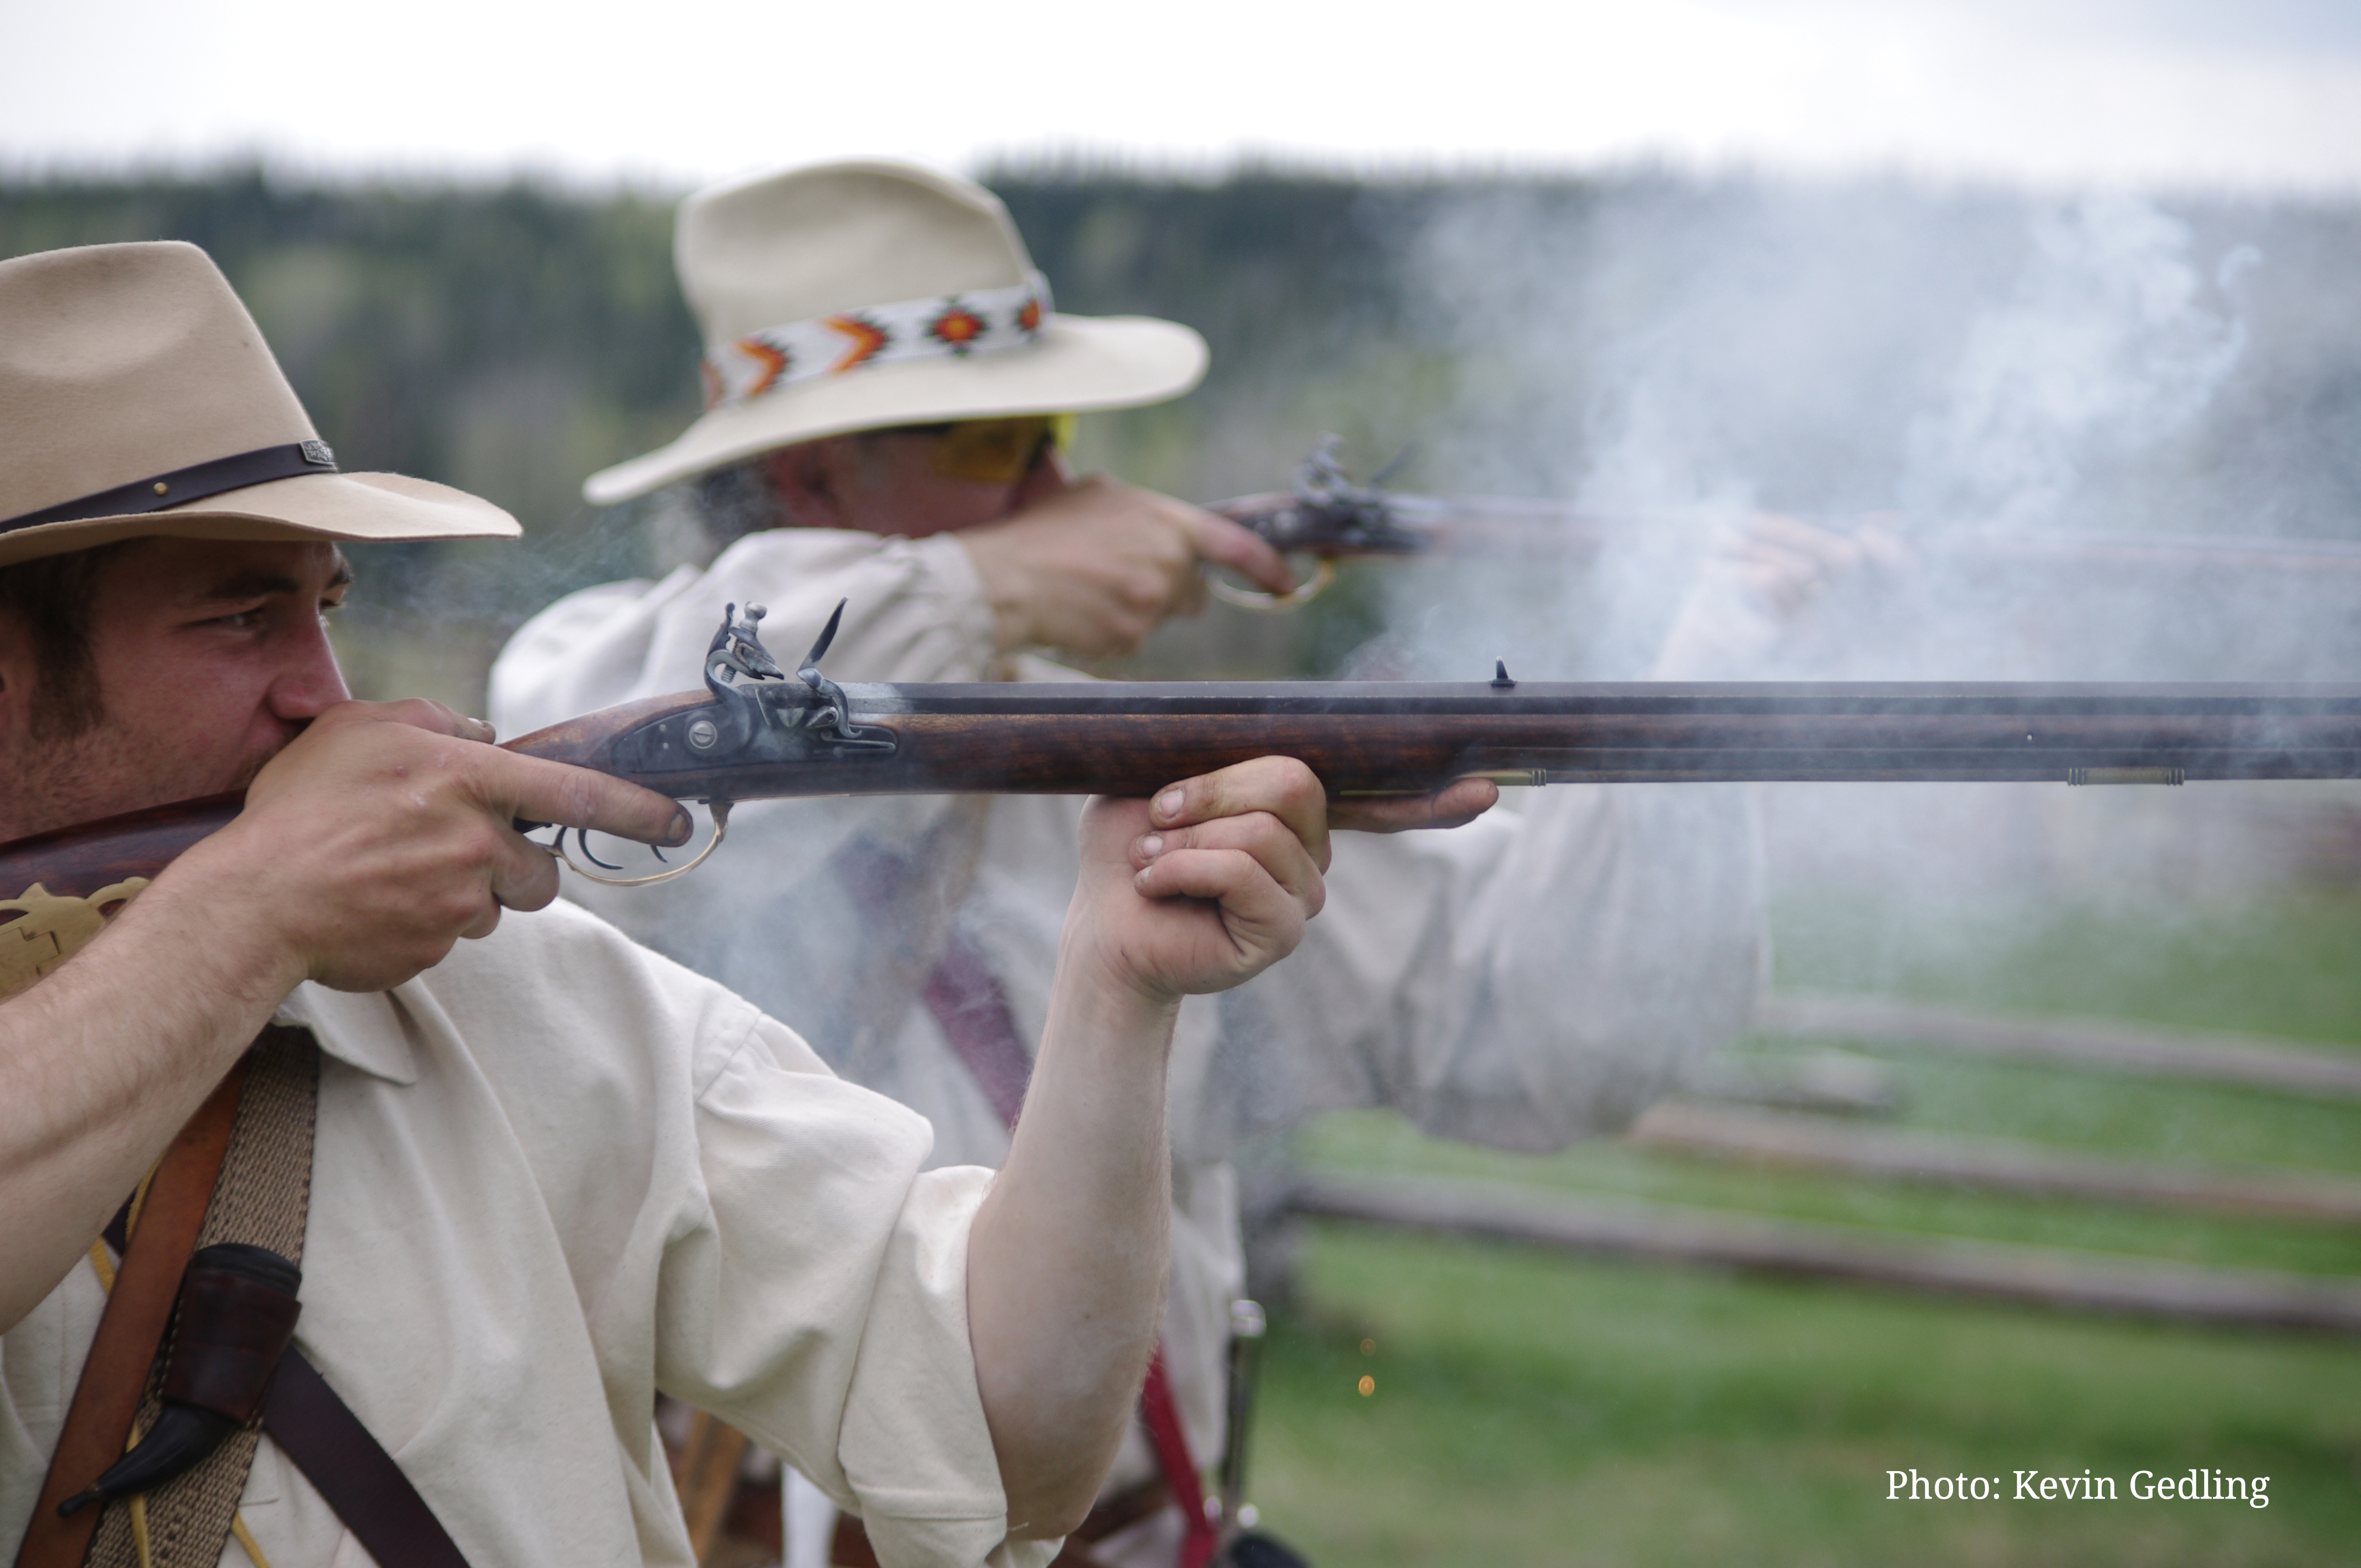 Blackpowder shooting